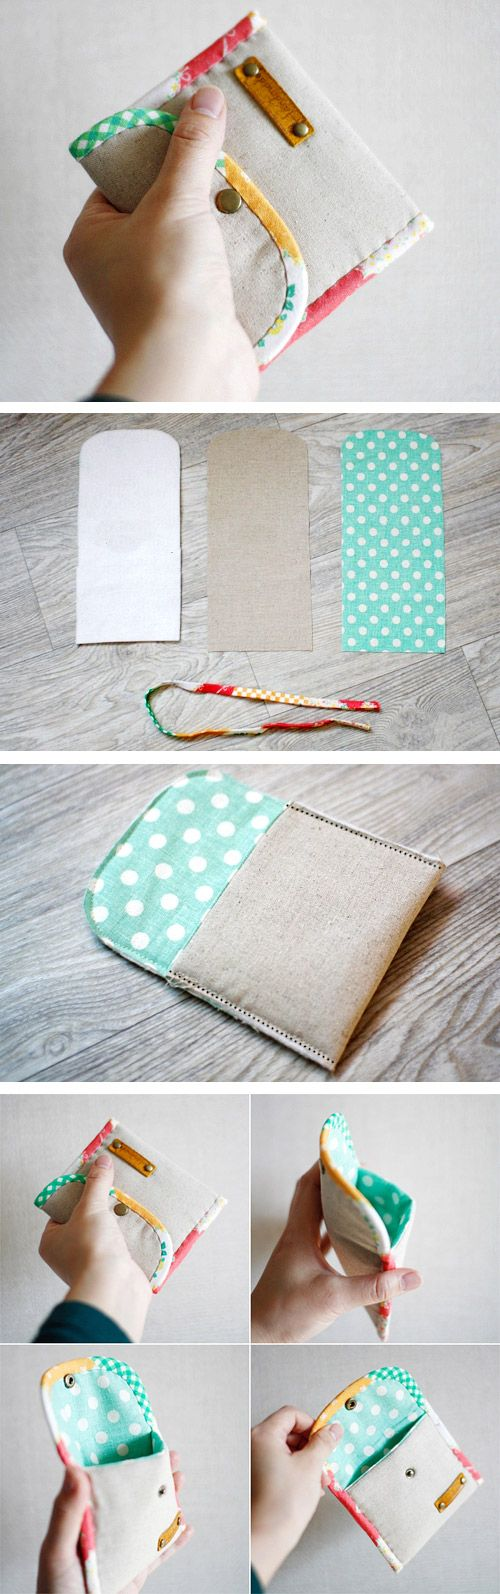 Coin Purse DIY tutorial in pictures. What a cute and simple idea. http://www.handmadiya.com/2015/10/easy-padded-coin-purse-tutorial.html